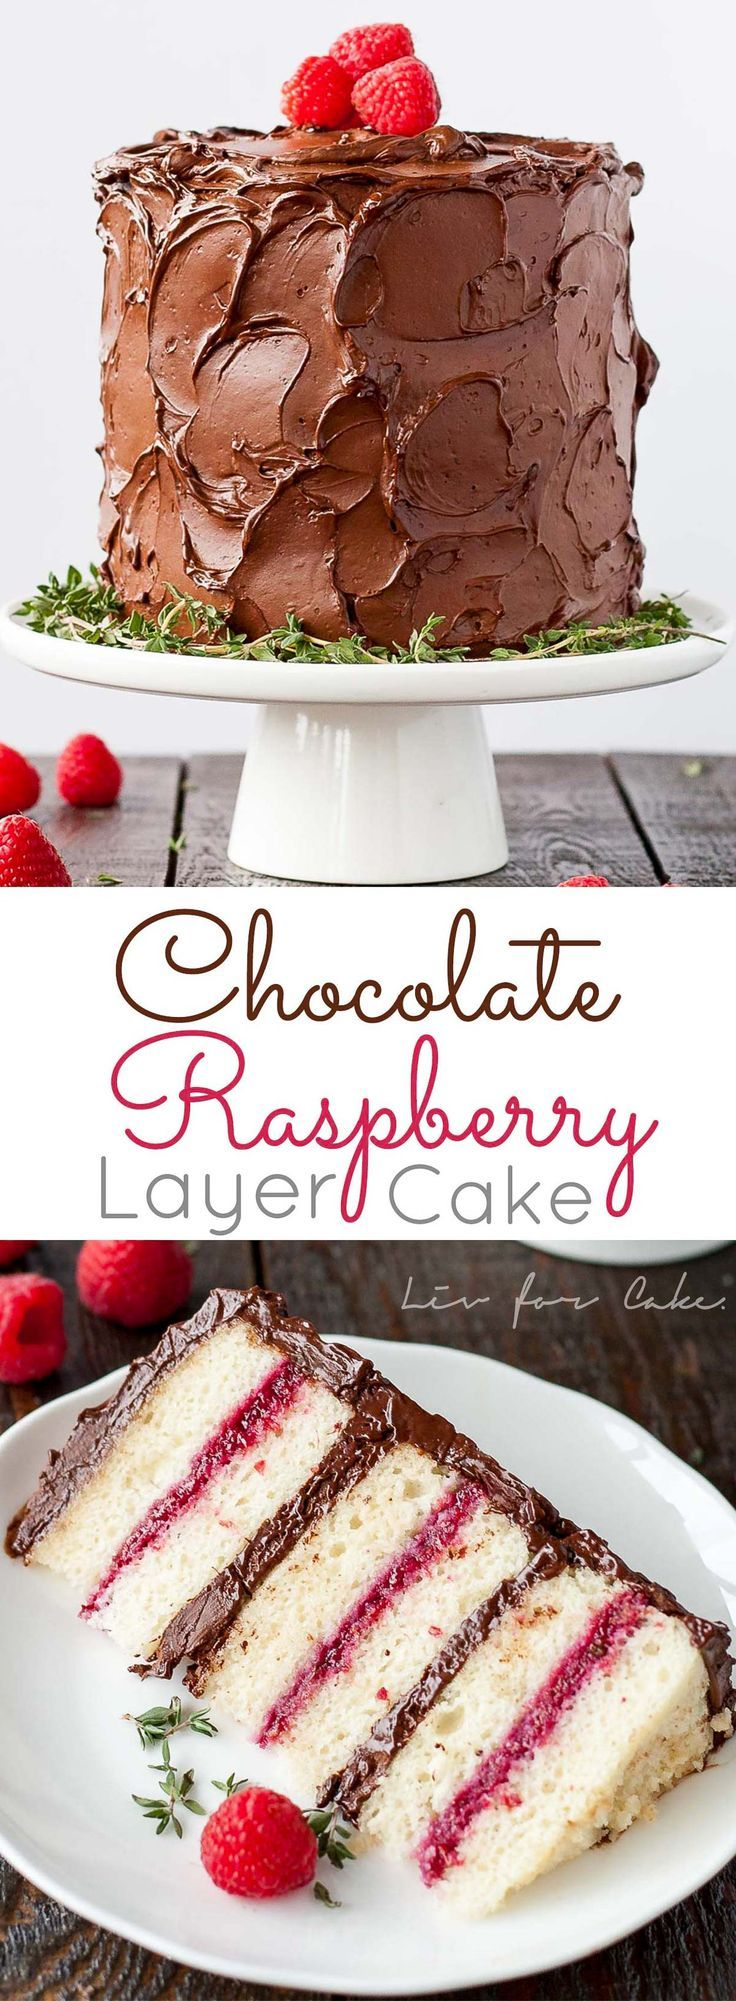 Chocolate Raspberry Layer Cake  - Six glorious layers of vanilla cake with raspberry sauce and a rich dark chocolate frosting.